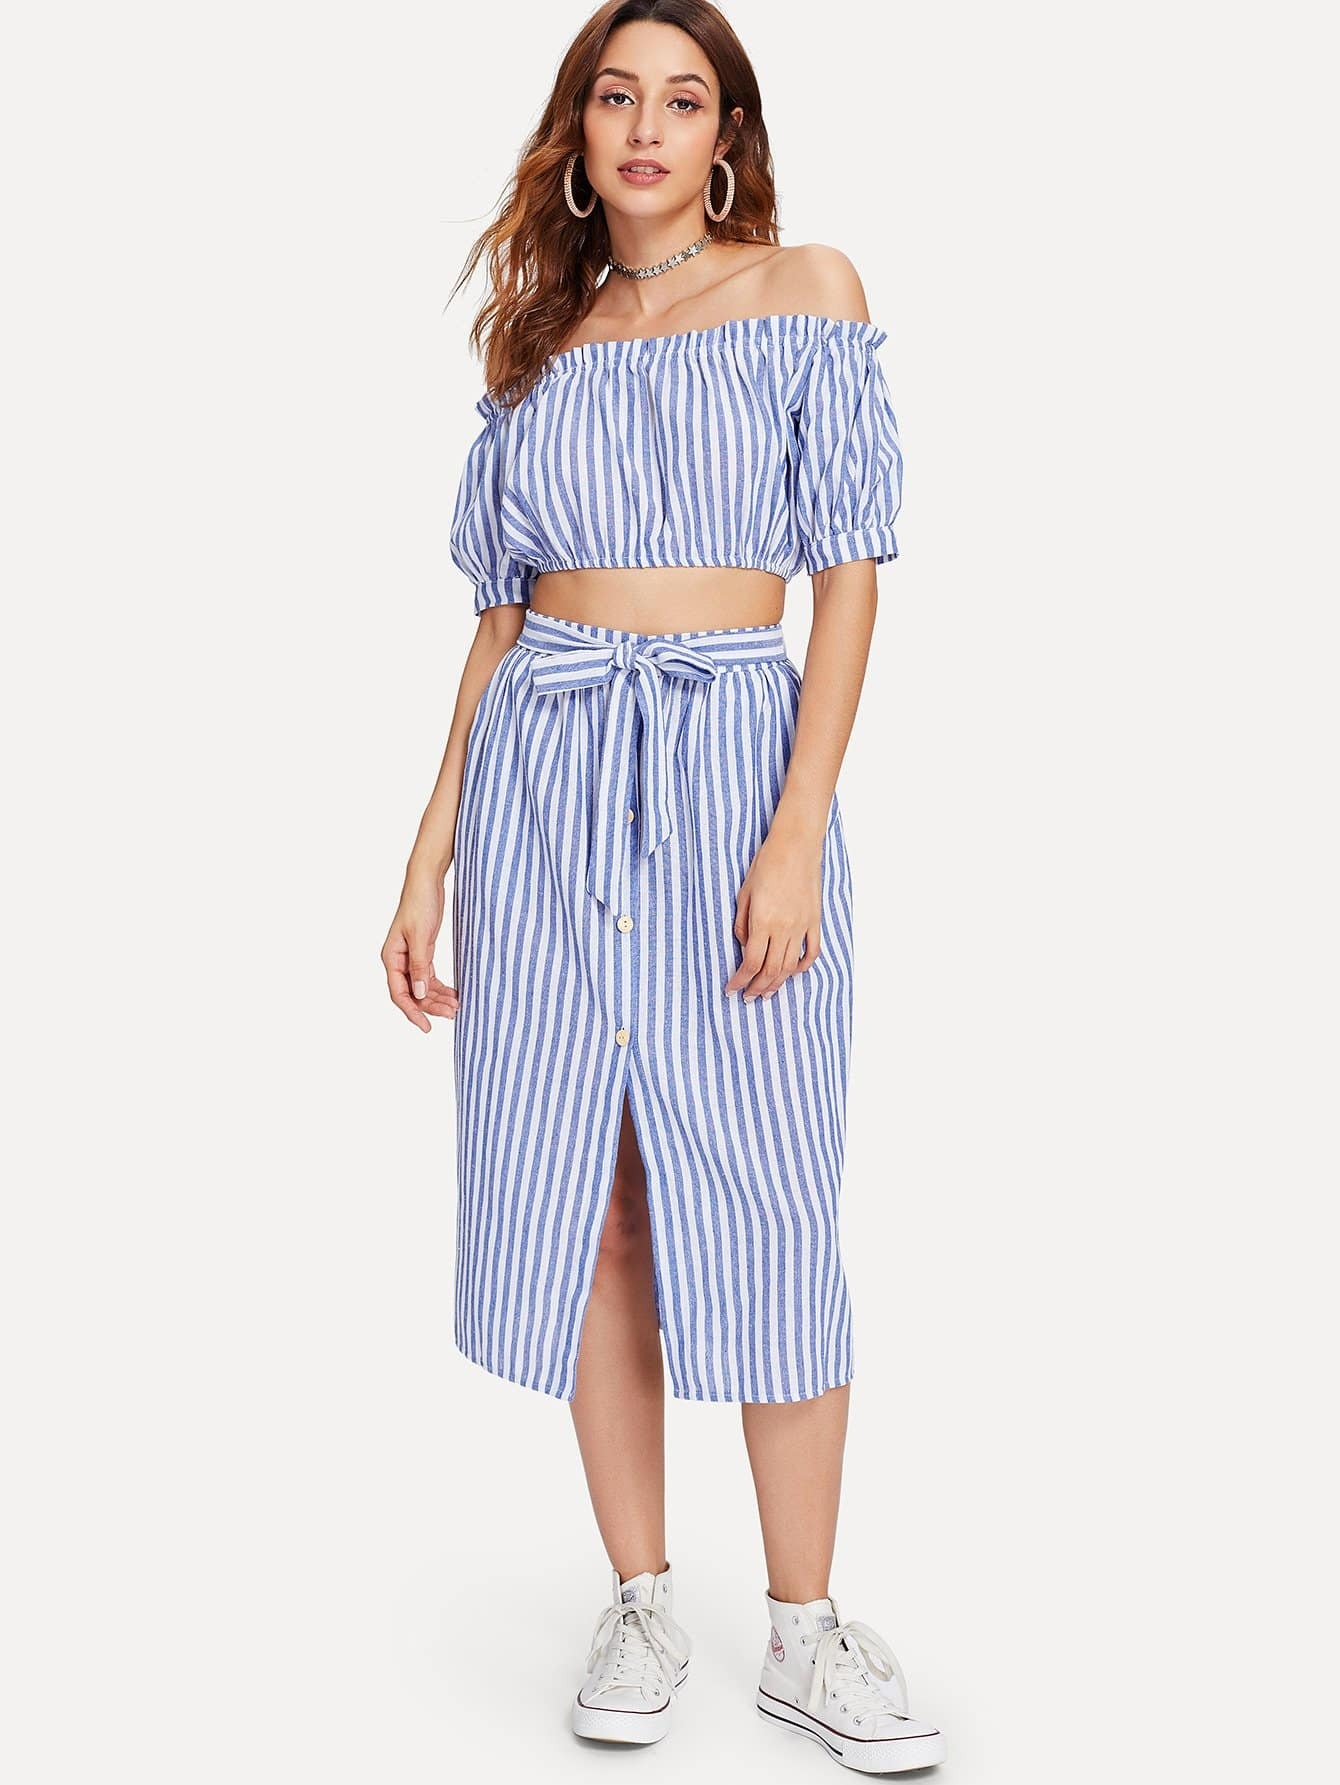 Off Shoulder Striped Top With Self Tie Skirt off shoulder hollow out self tie top